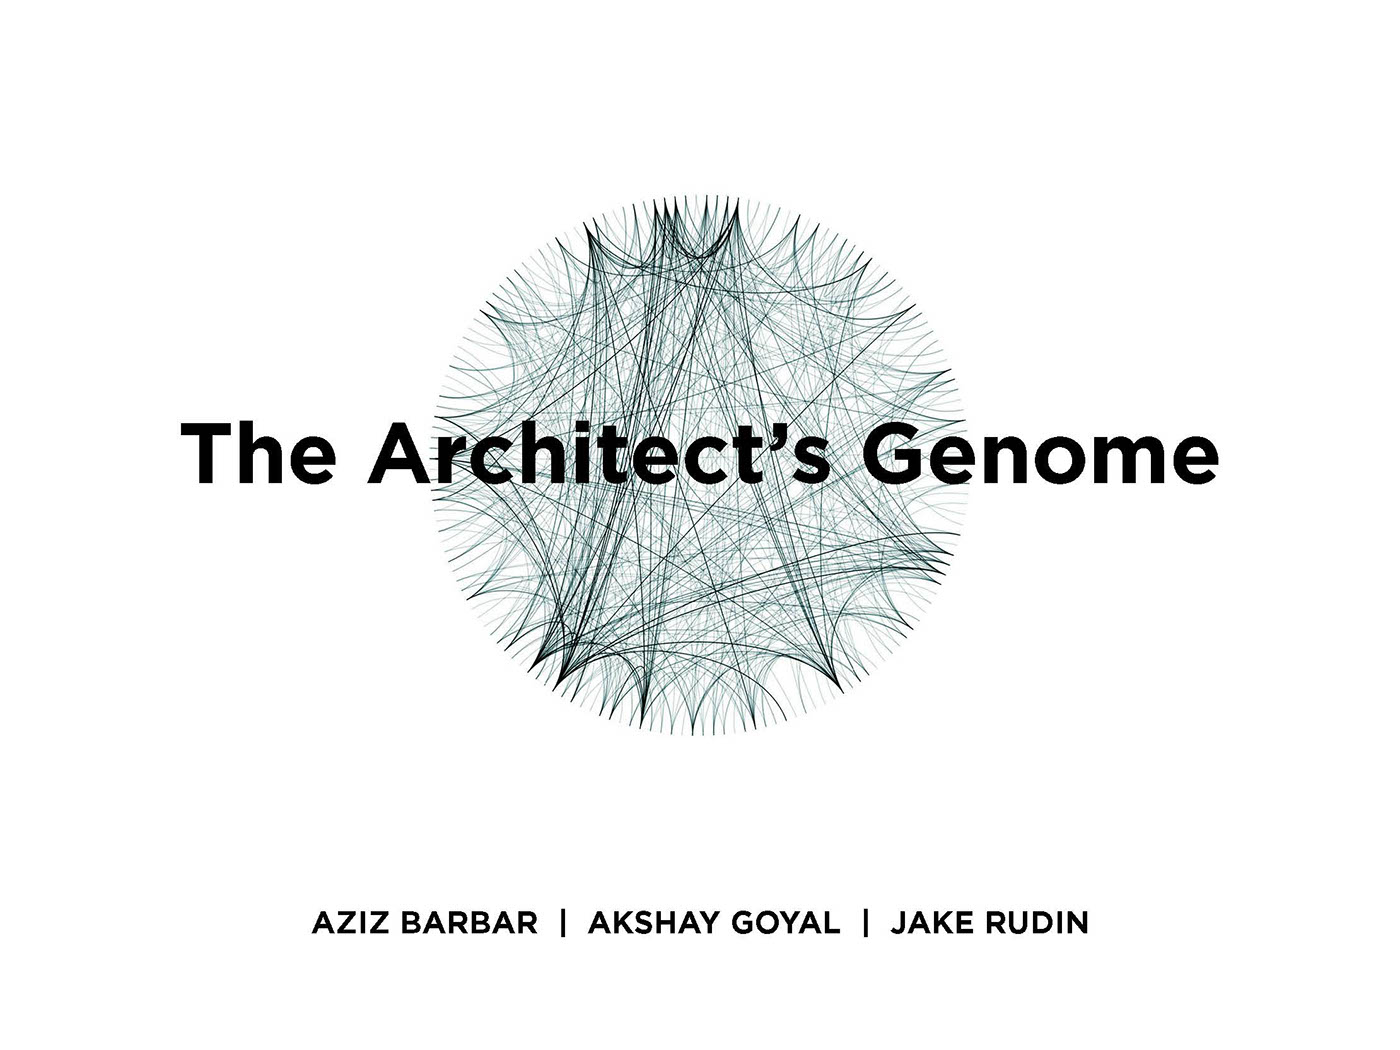 The Architect's Genome on Behance